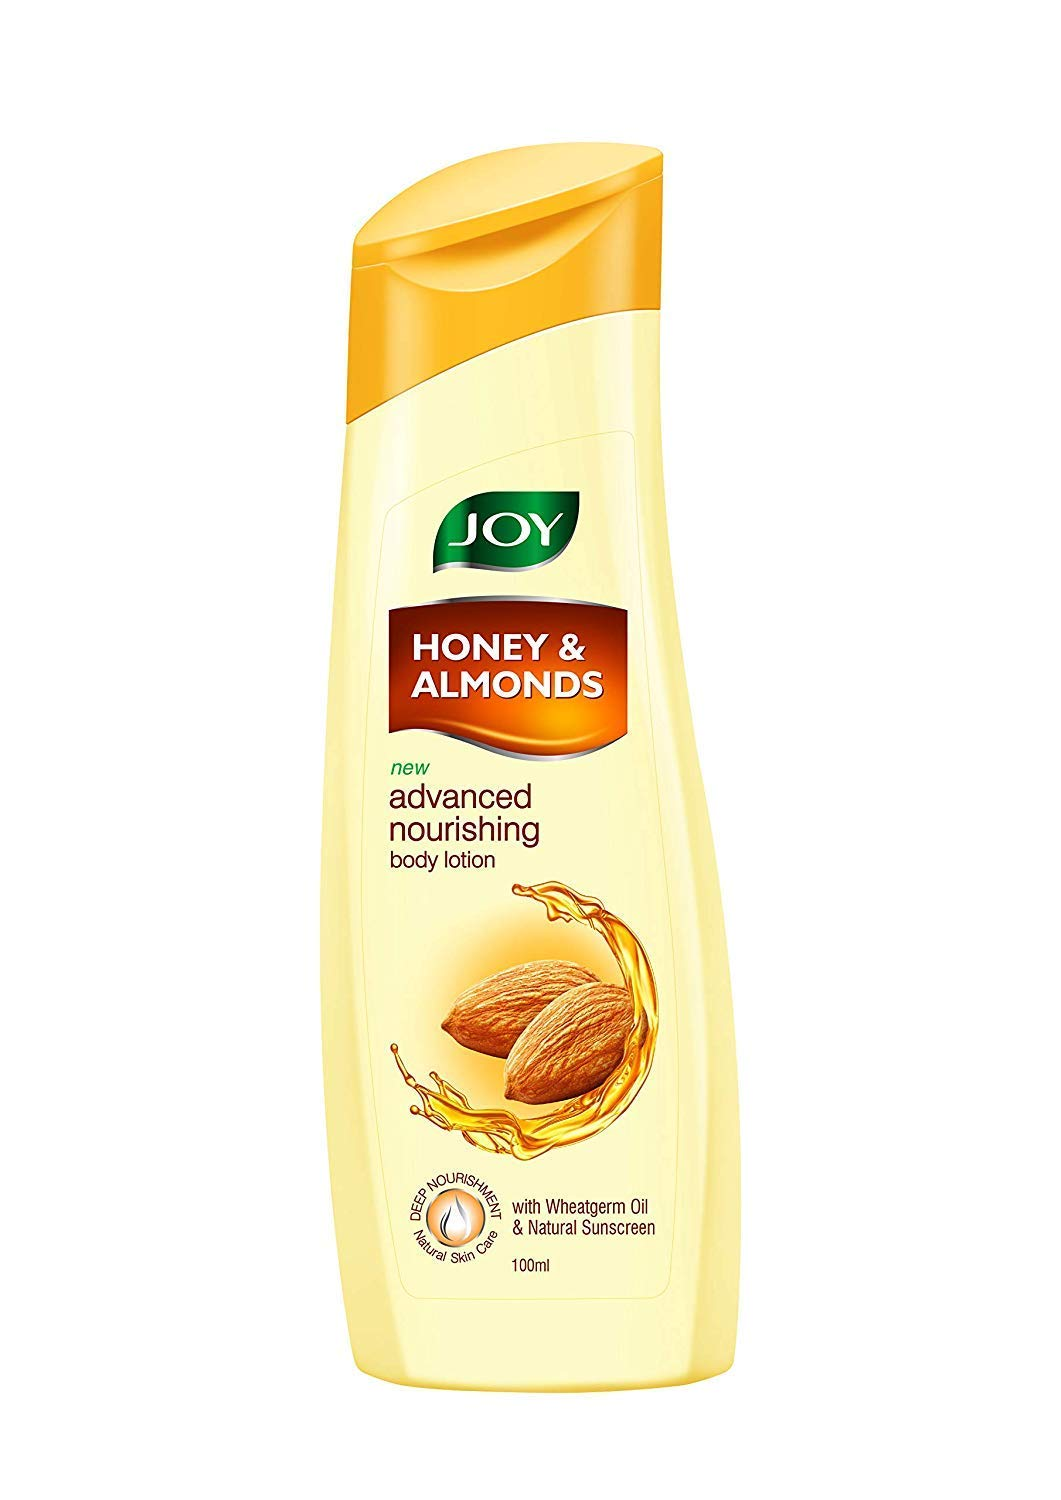 JOY Honey and Almonds Advanced Nourishing Body Lotion for Normal to Dry skin - 100ml